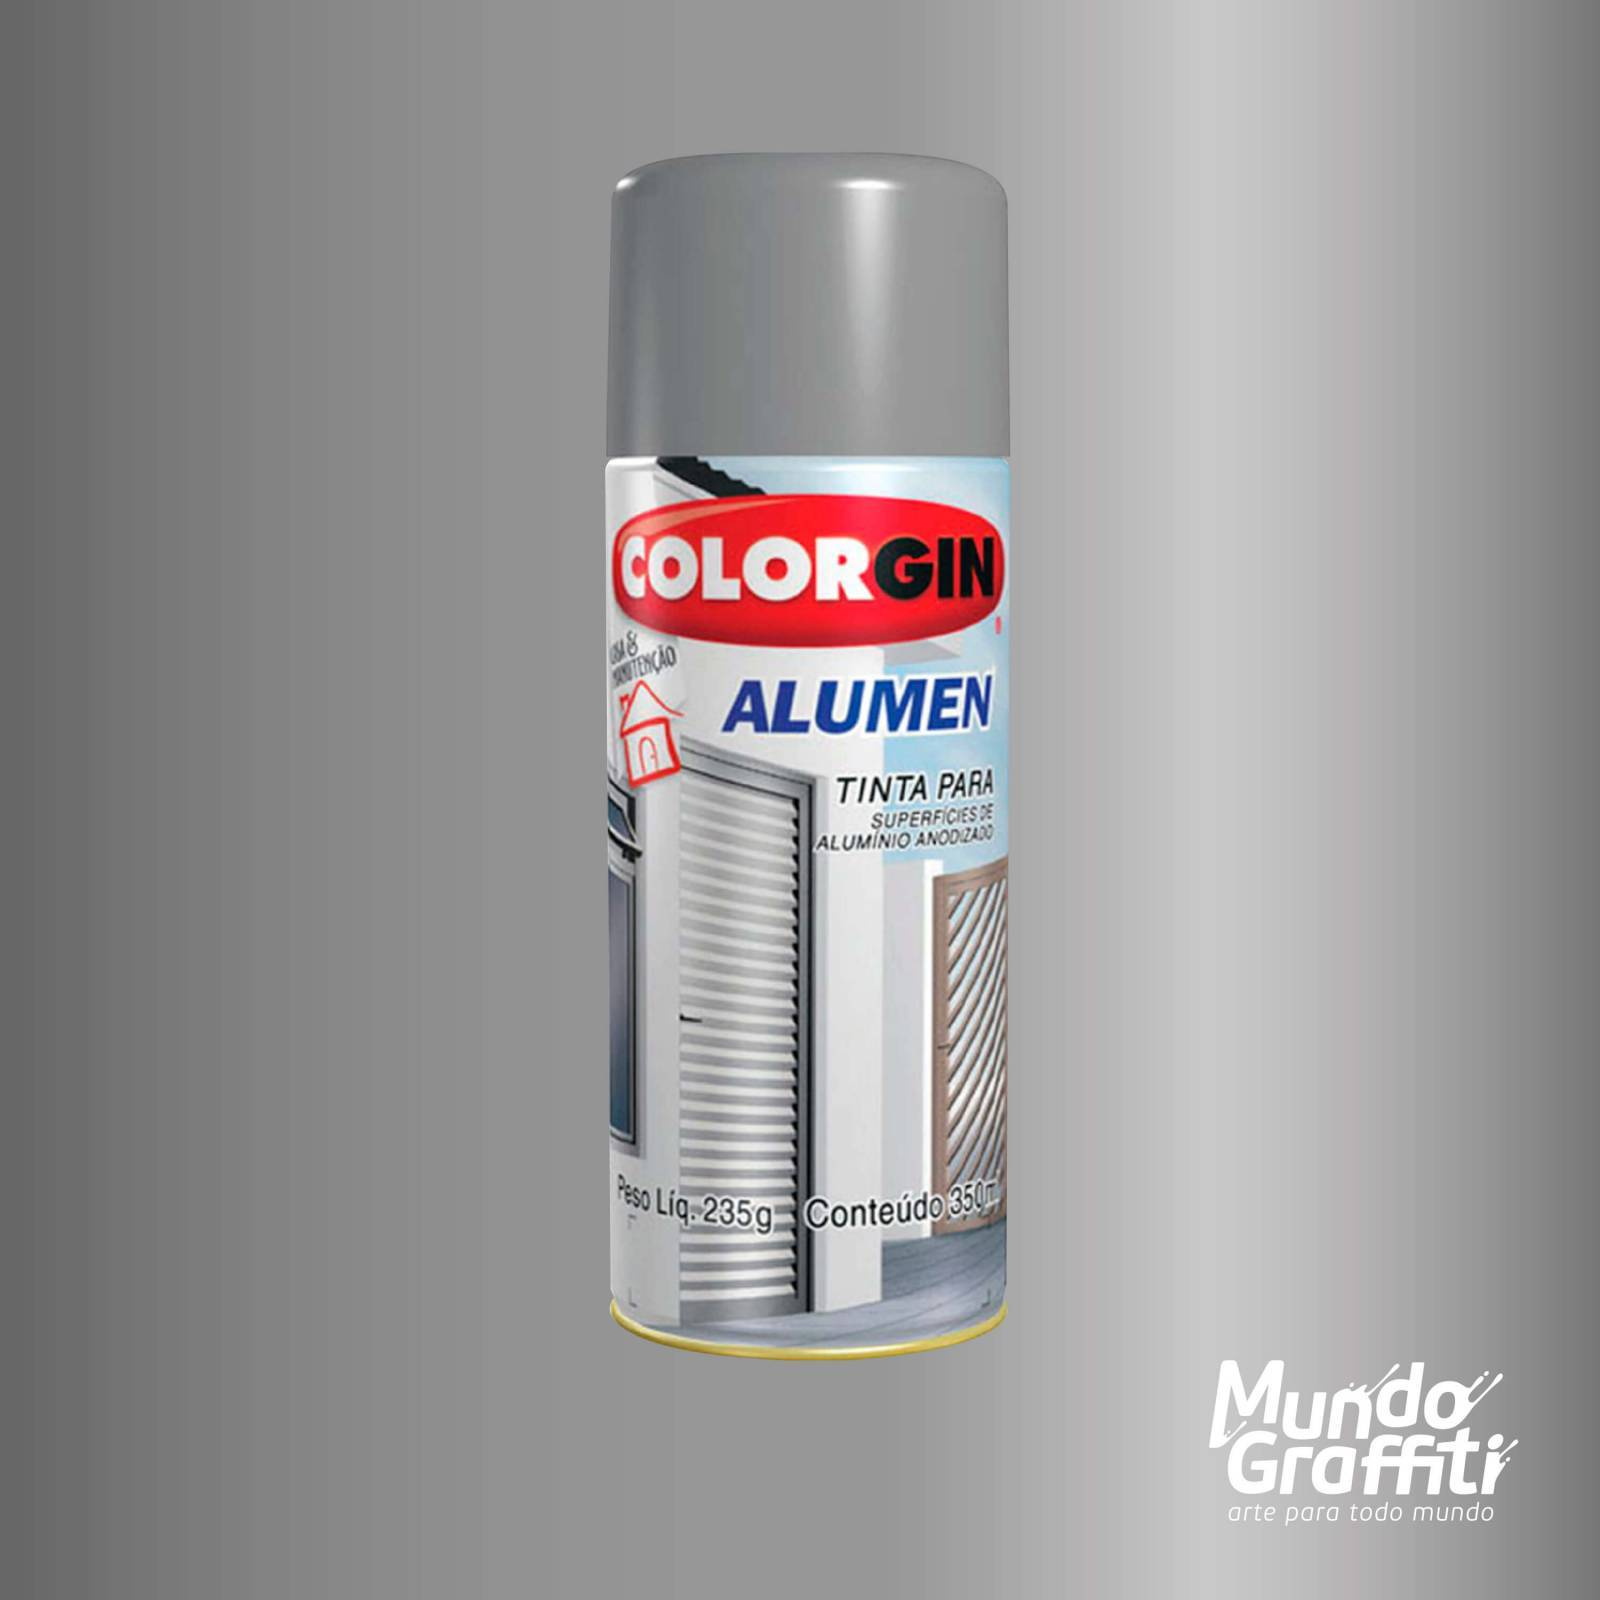 Tinta Spray Colorgin Alumen 770 Alumínio 350ml - Mundo Graffiti